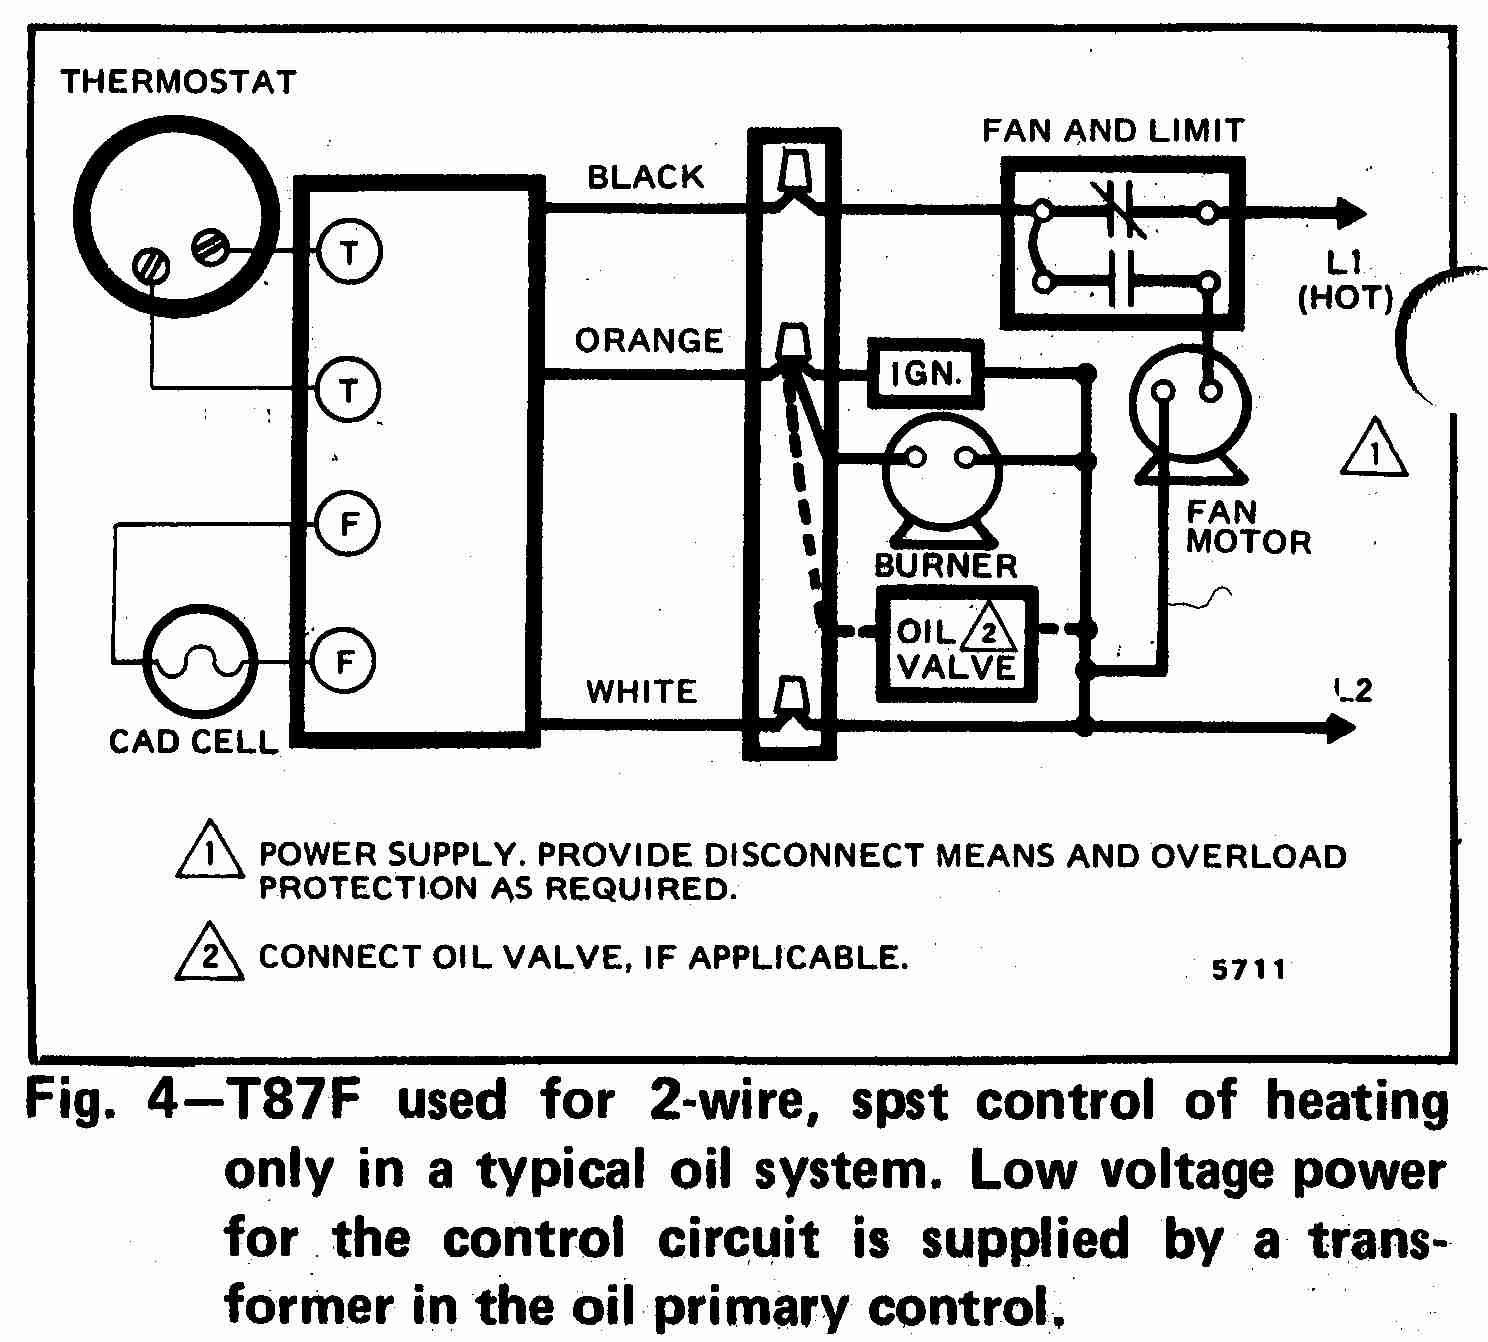 [DIAGRAM_4FR]  Unique Westinghouse Electric Furnace Wiring Diagram #diagram #diagramsample  #diagramtemplate #wiringdiagr… | Thermostat wiring, Honeywell thermostats,  Diagram chart | Wiring Diagram Oil Furnace |  | Pinterest